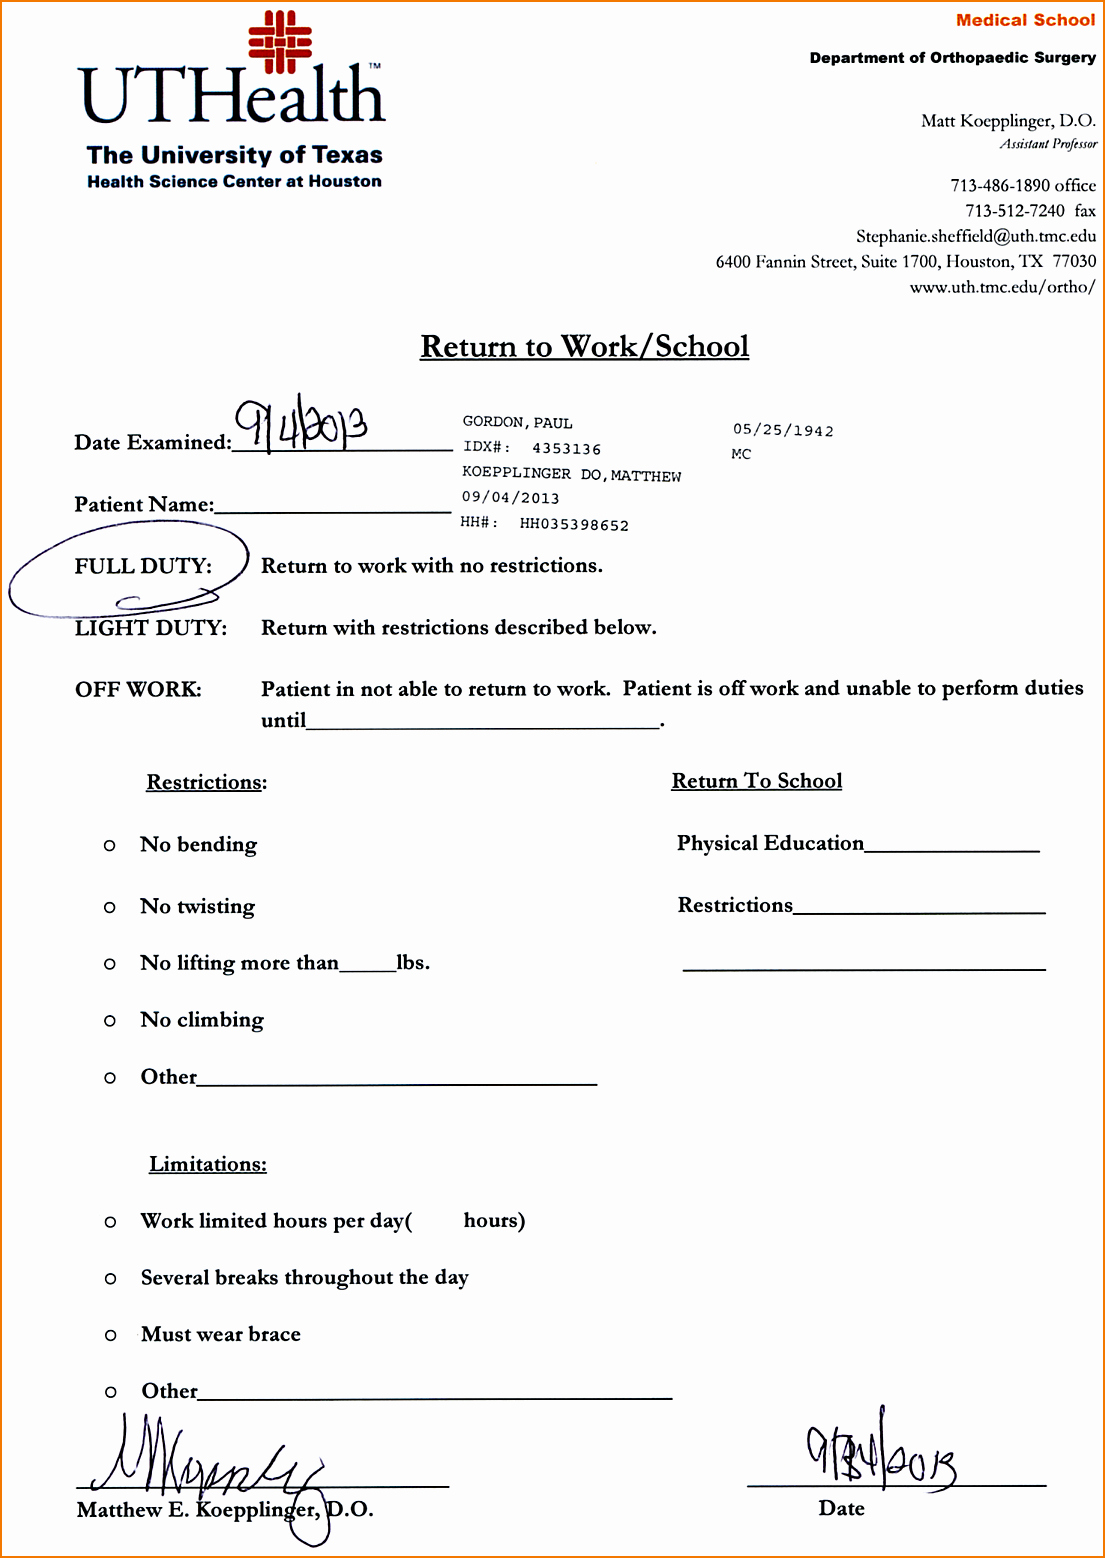 Emergency Room Doctor Note Template Beautiful 5 Doctor's Note for School